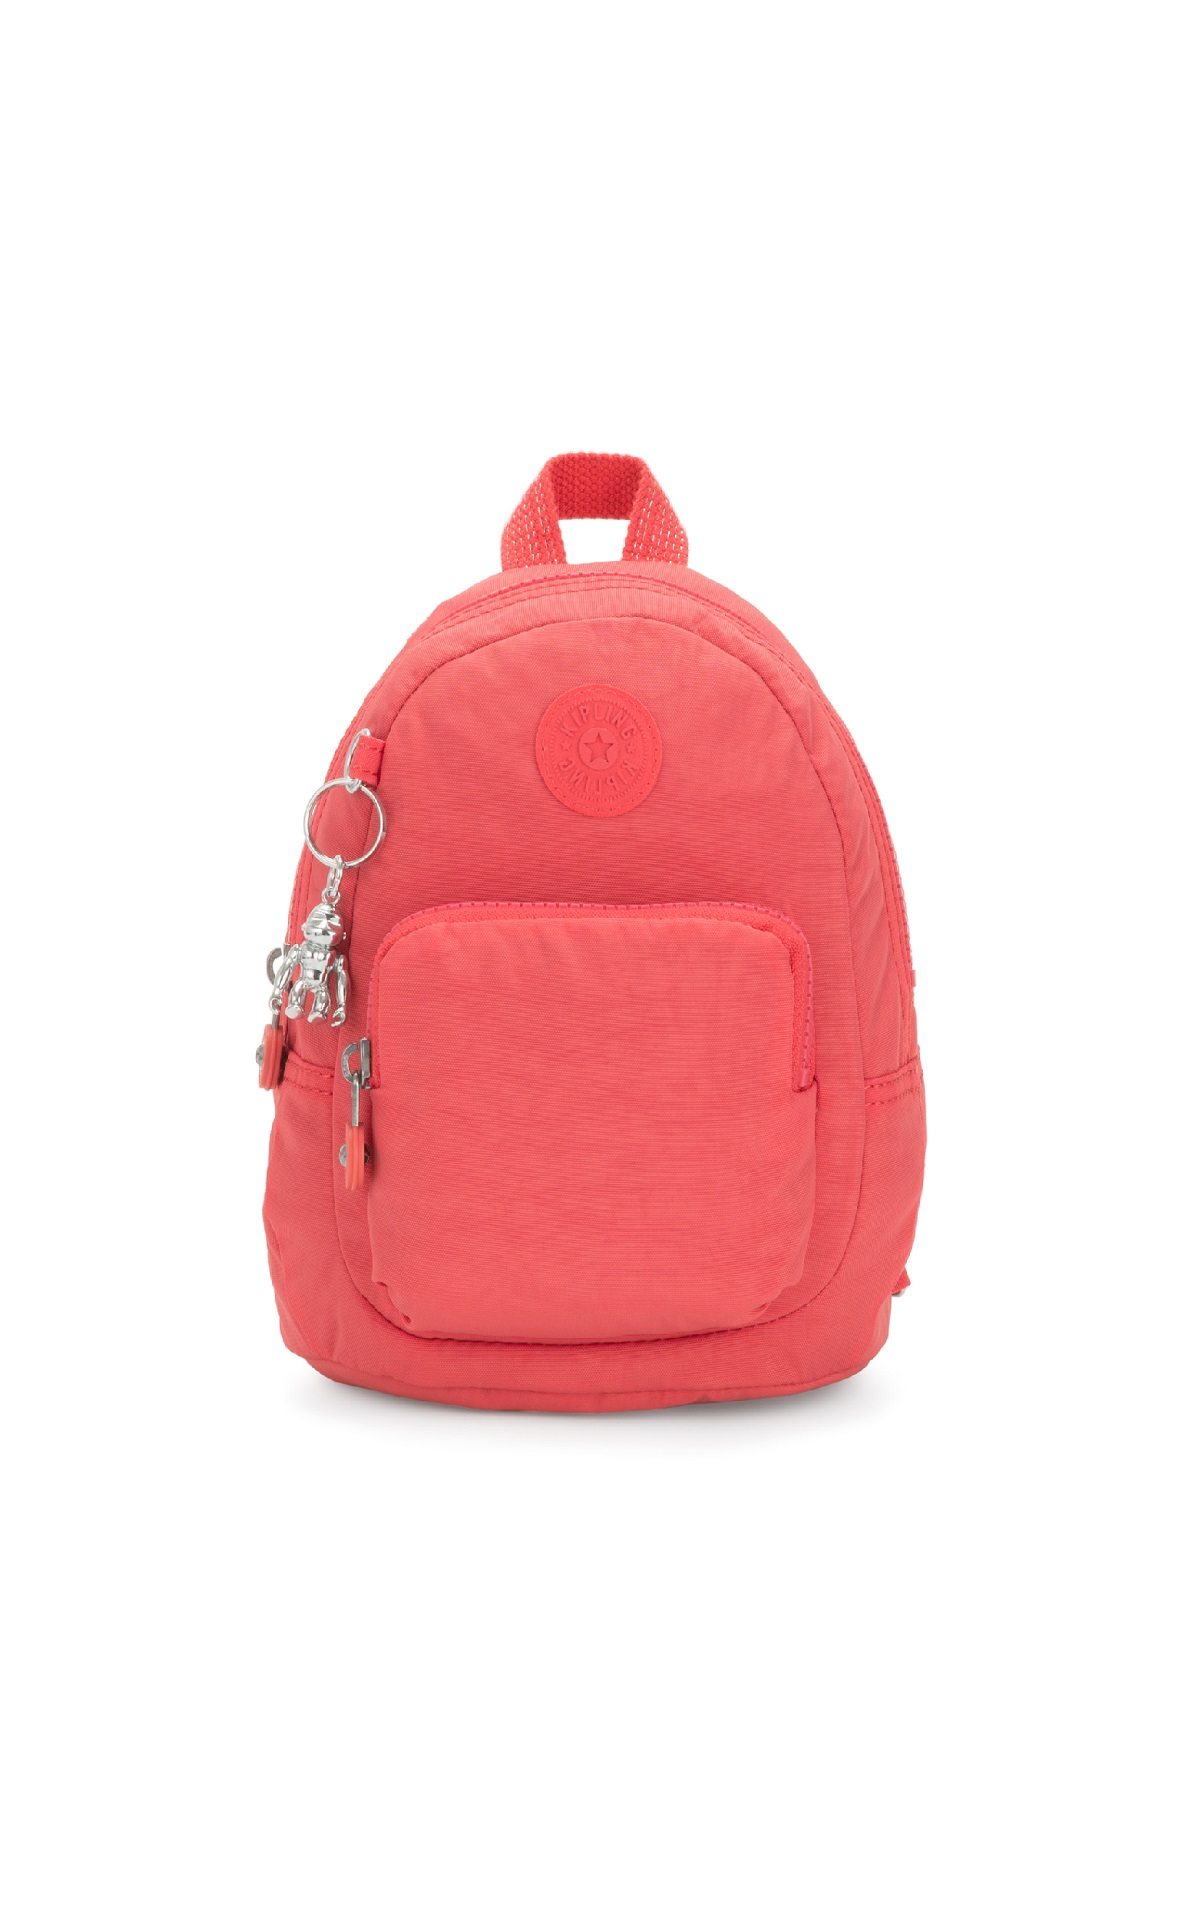 Salmon backpack Kipling